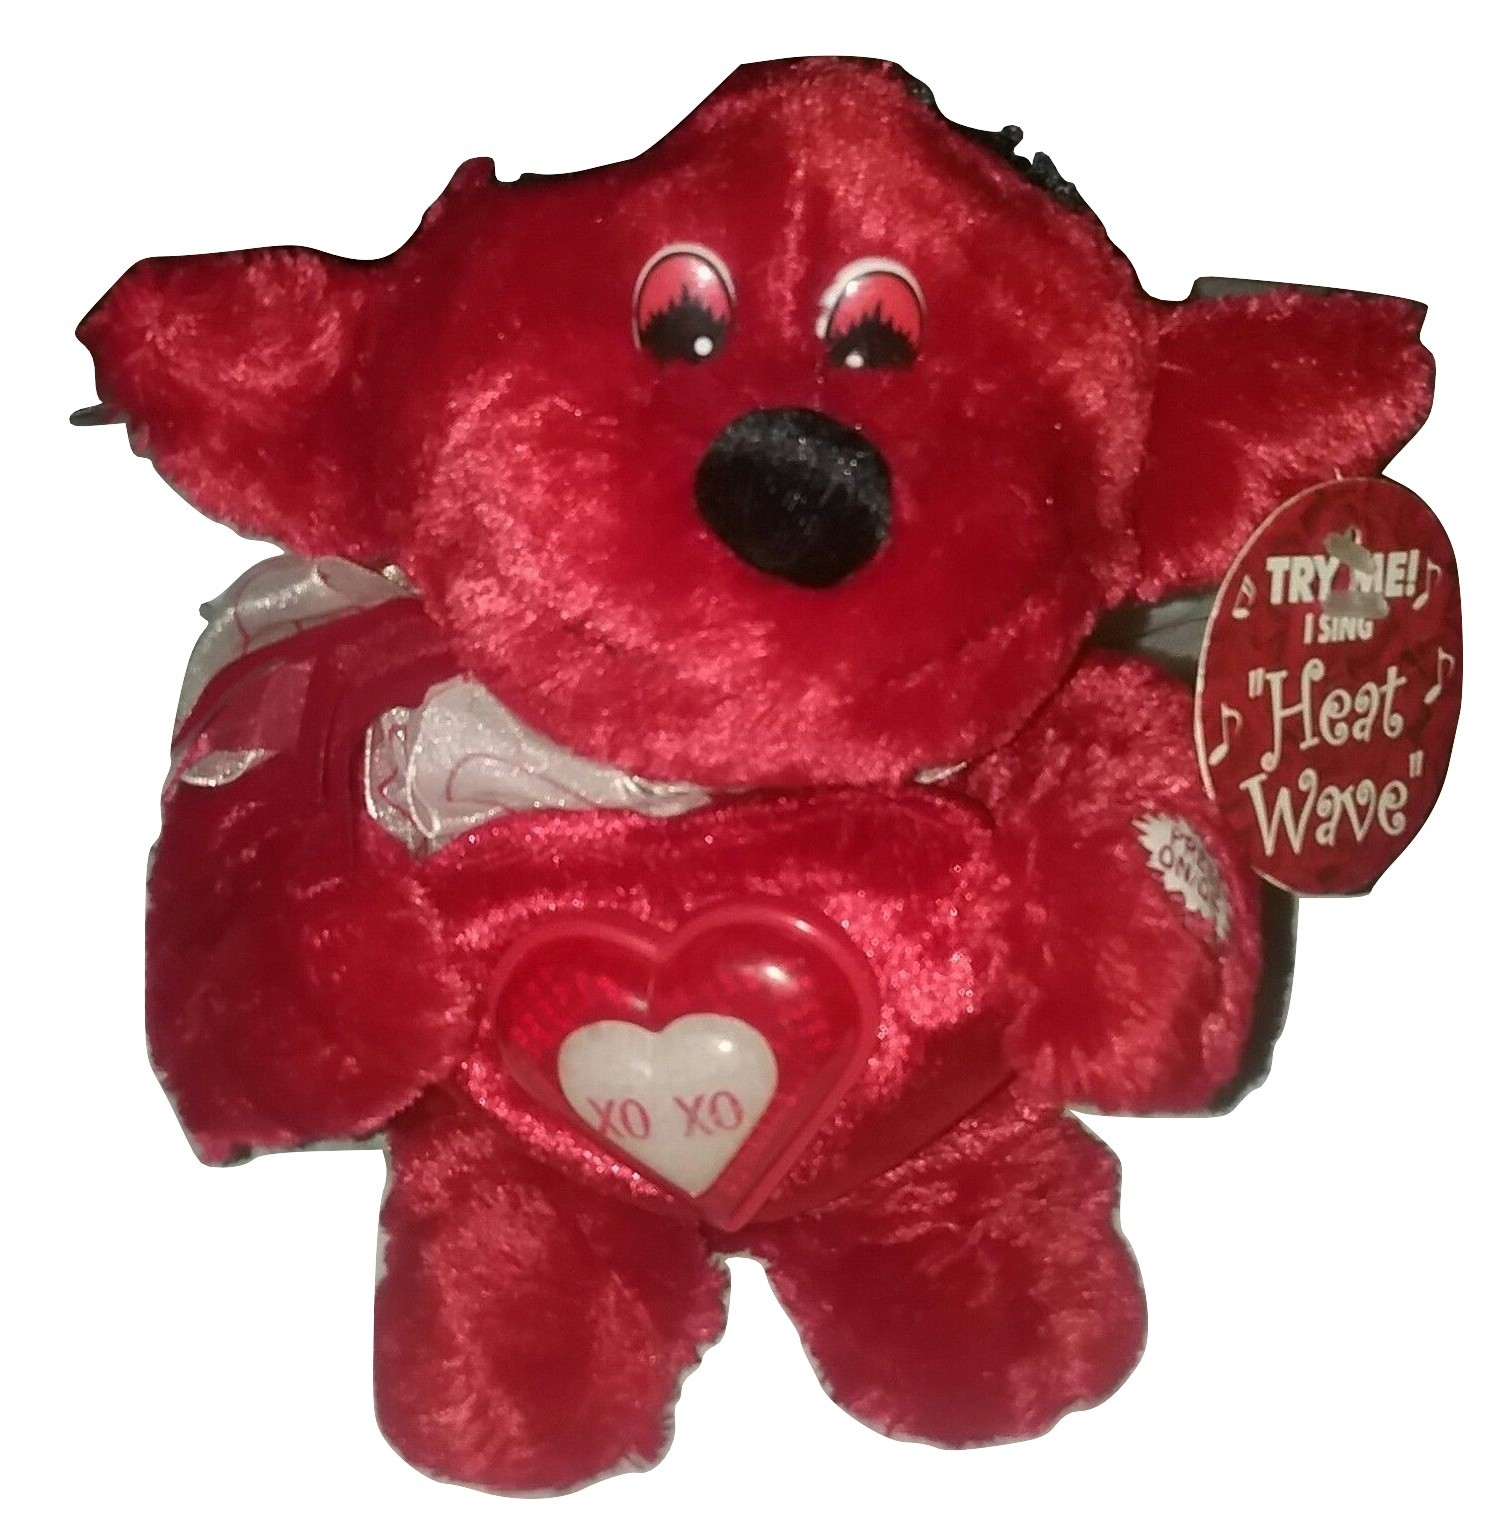 f22a34915f6a2 Dan Dee Collectors Choice Red Devil Plush Sings and Light UP (Heat Wave ) -  £10.05 GBP